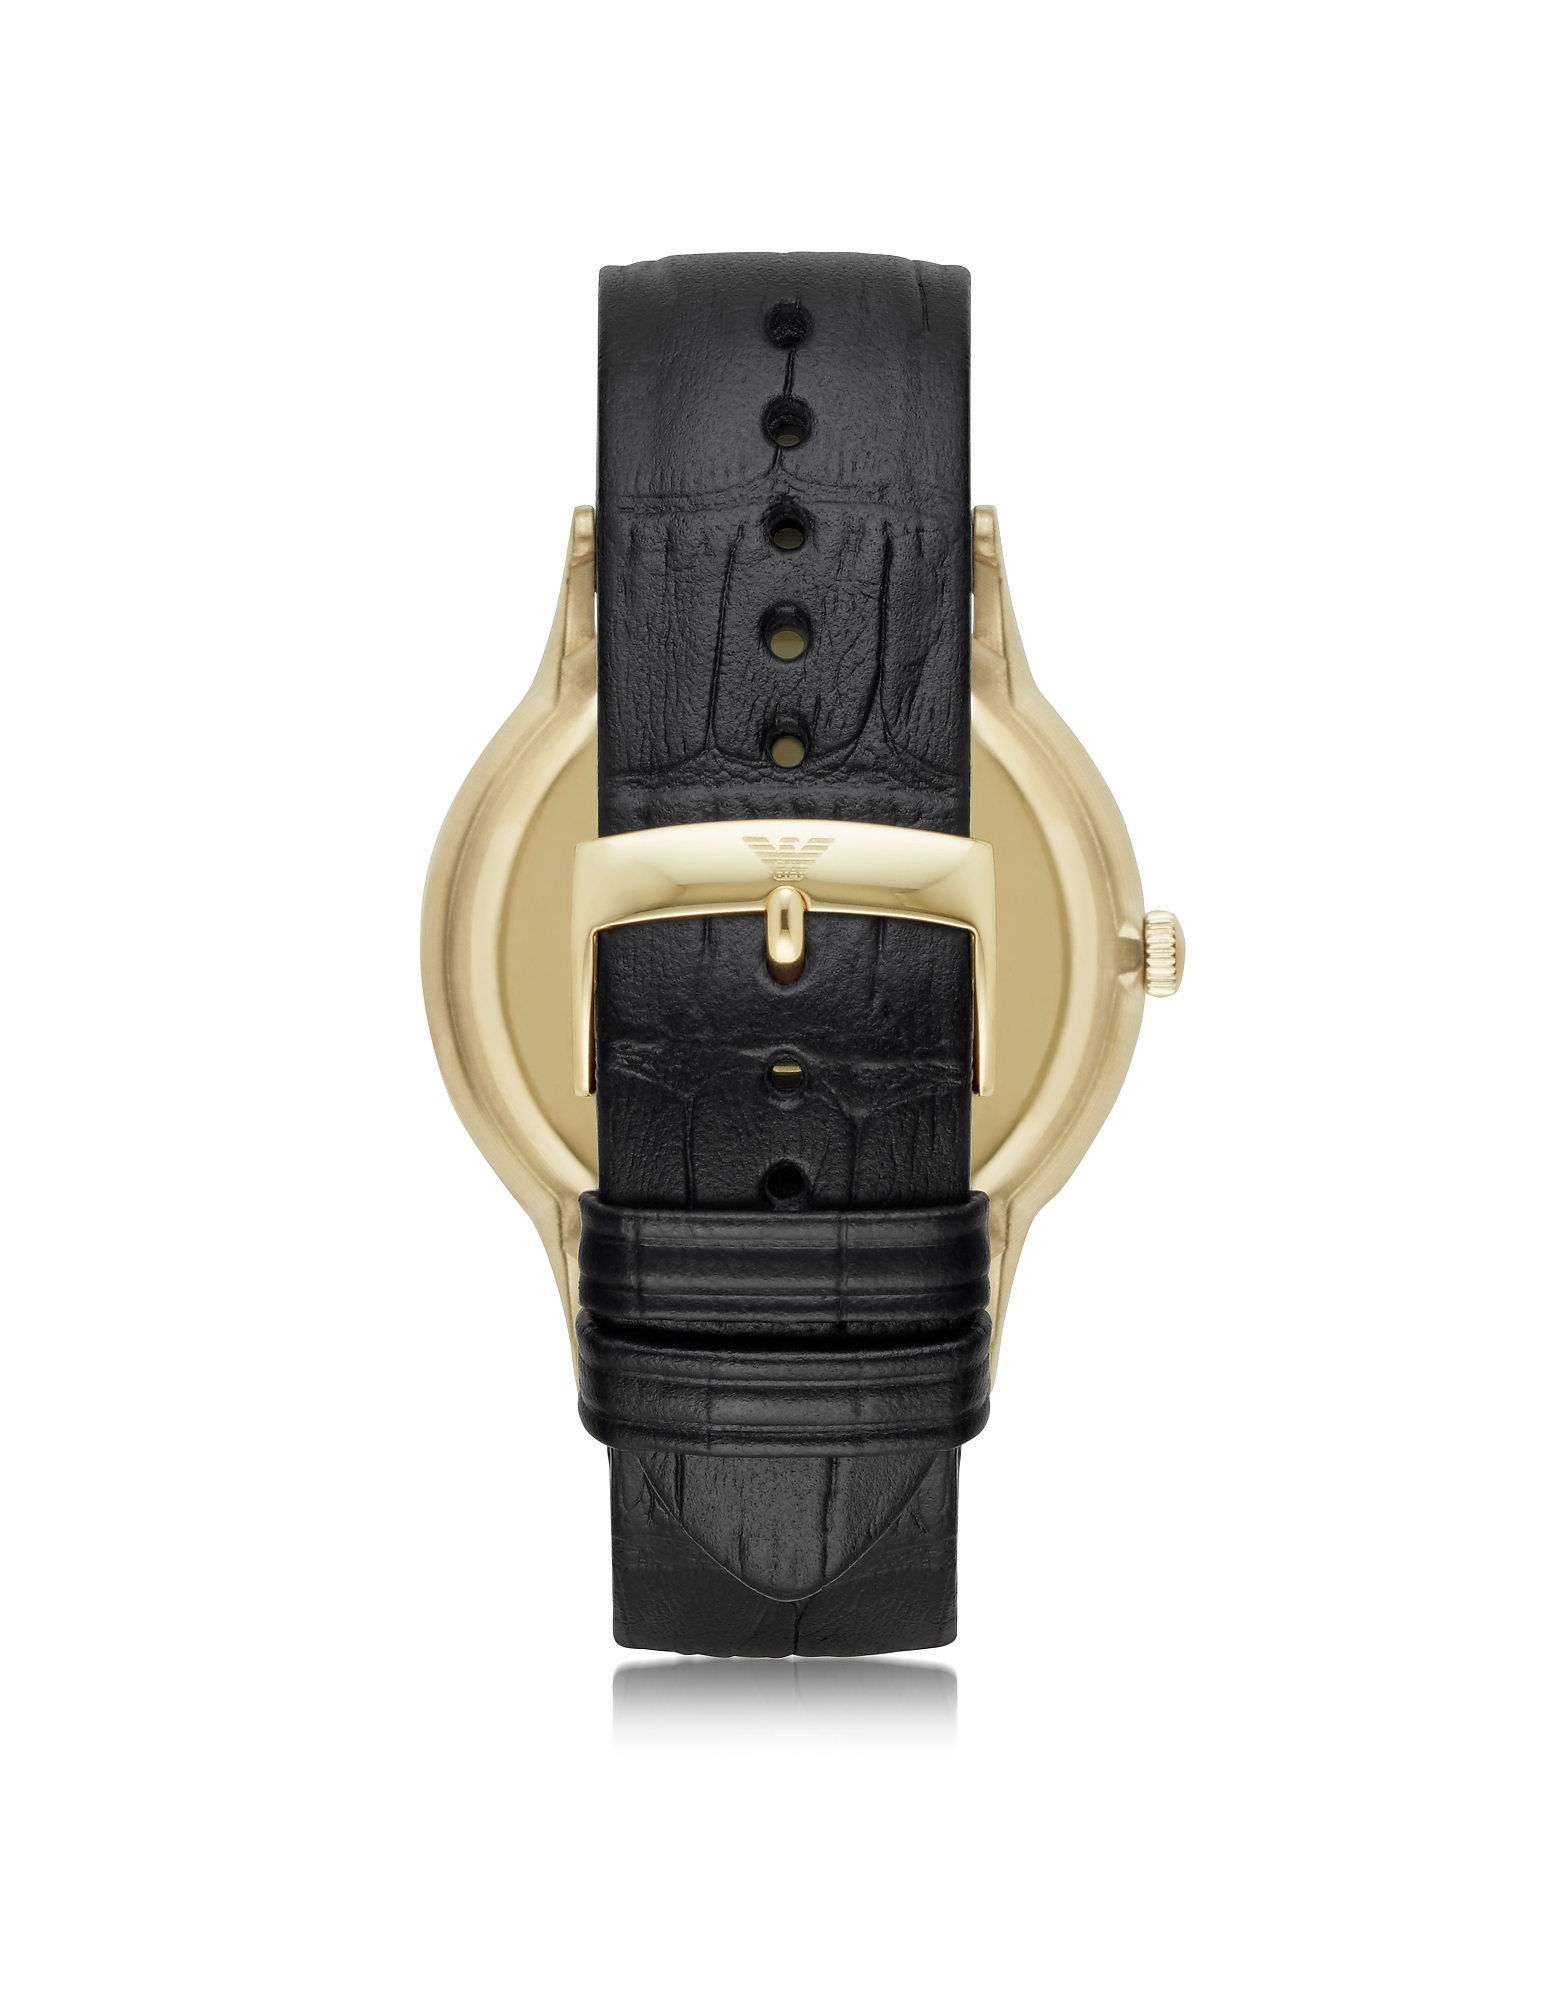 Gold-tone PVD Stainless Steel Men's Quartz Watch w/Croco Embossed Leather Strap от Forzieri.com INT